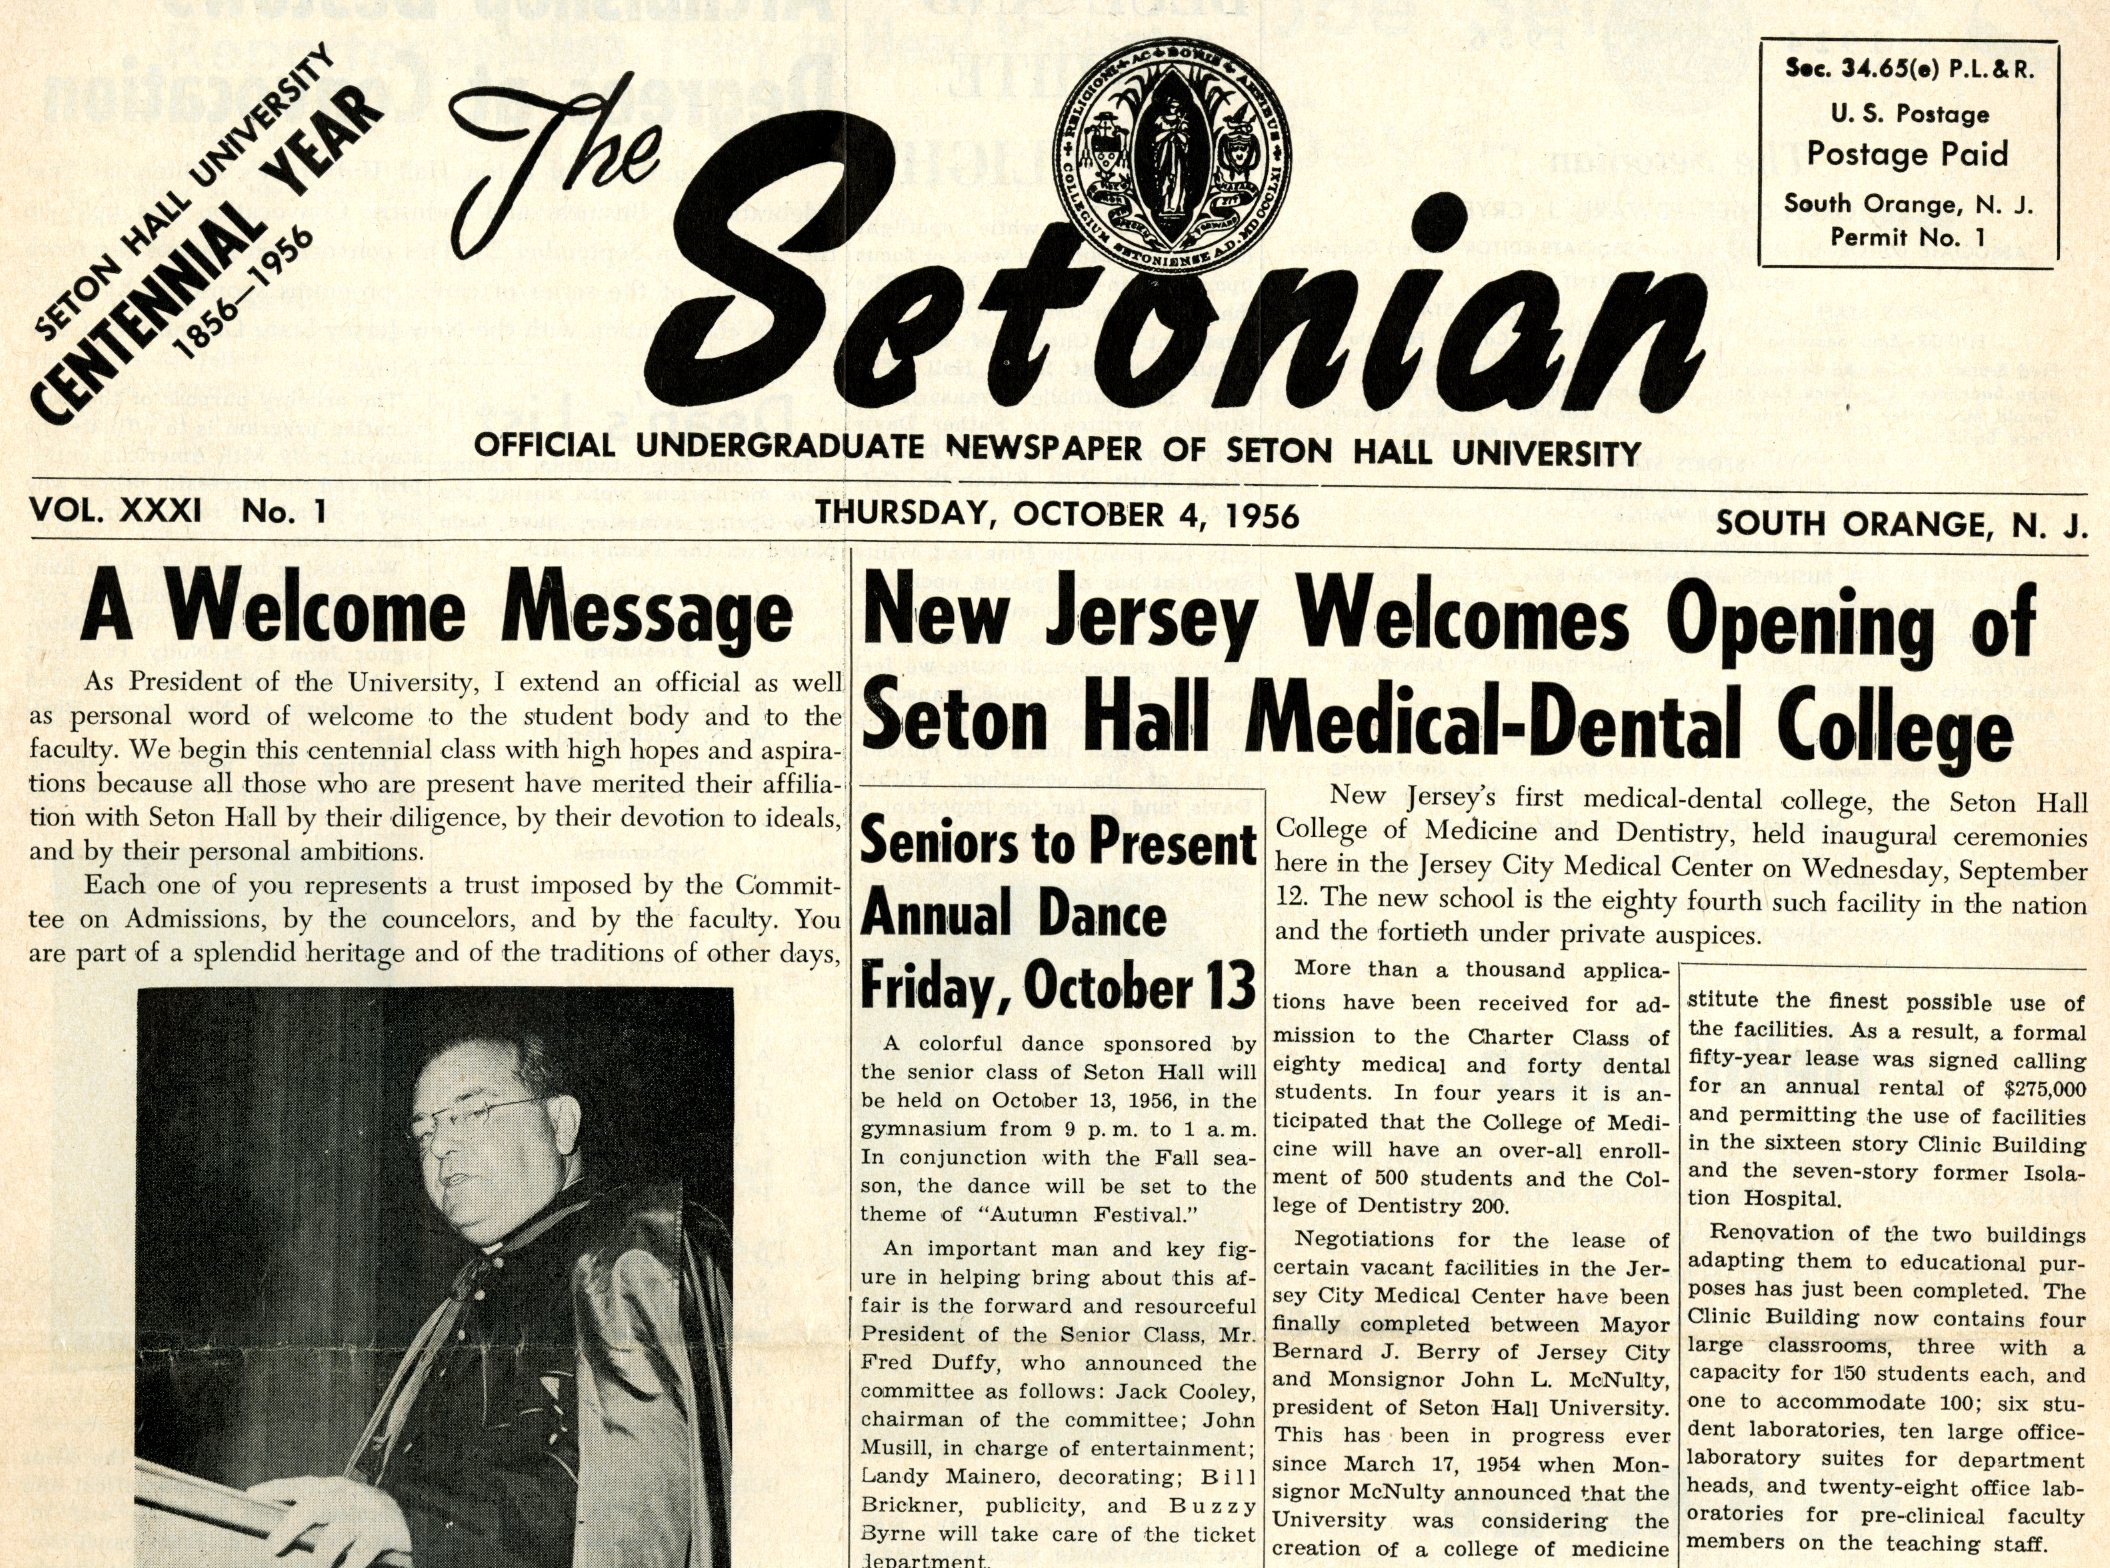 Setonian_New Jersey welcomes opening of Seton Hall Medical-Dental College